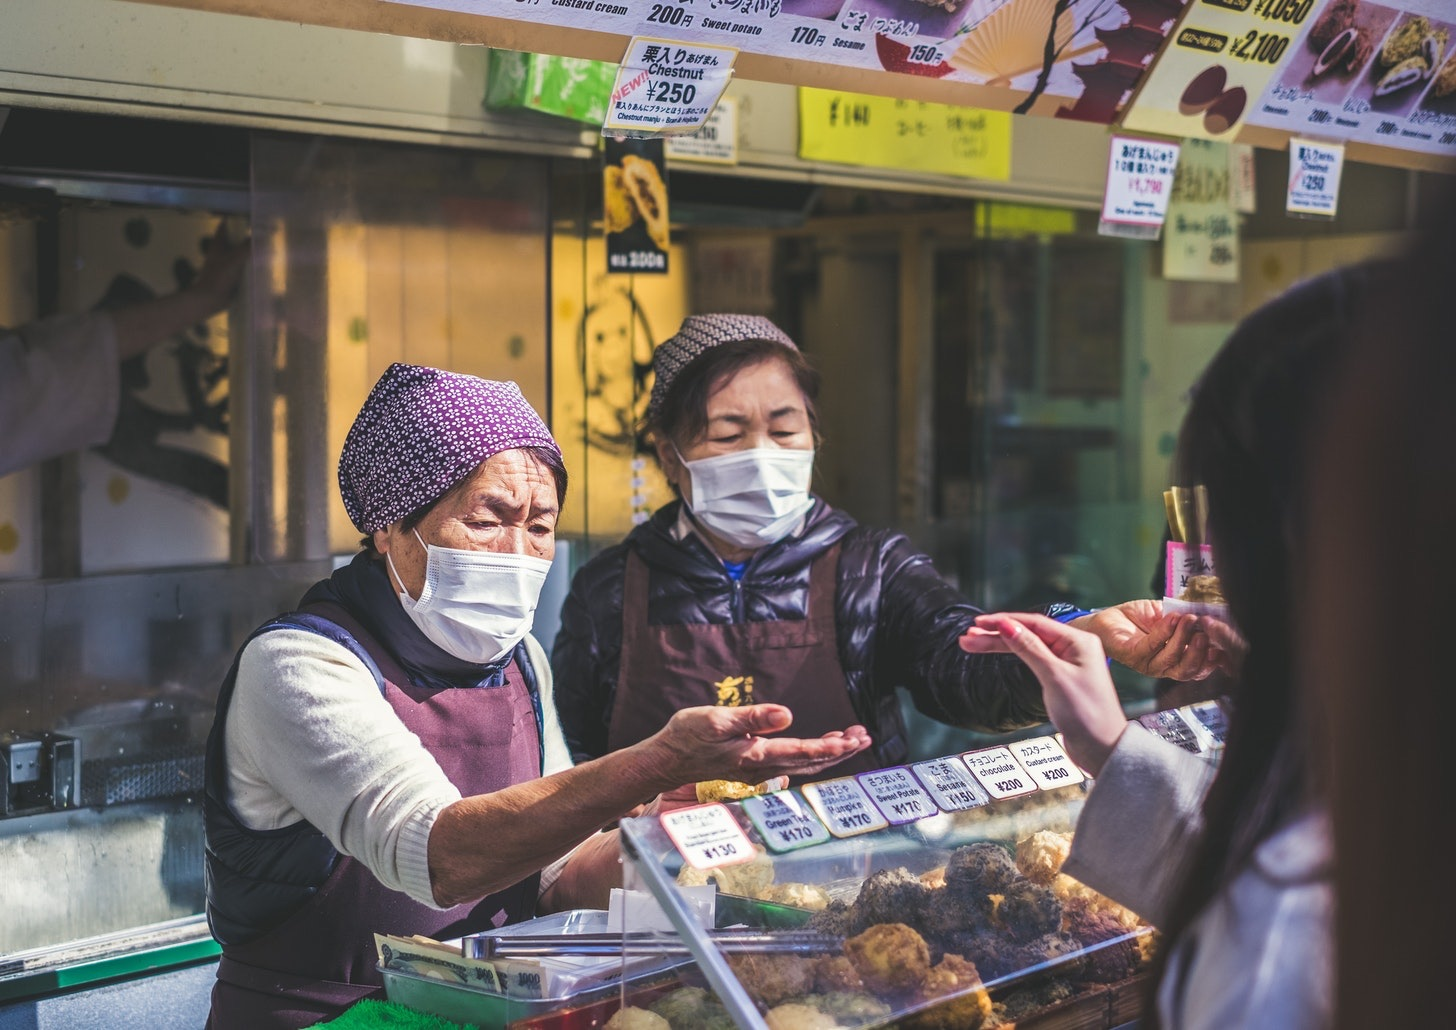 /fintech-in-japan-how-app-payments-are-changing-cash-culture-cr243uo2 feature image